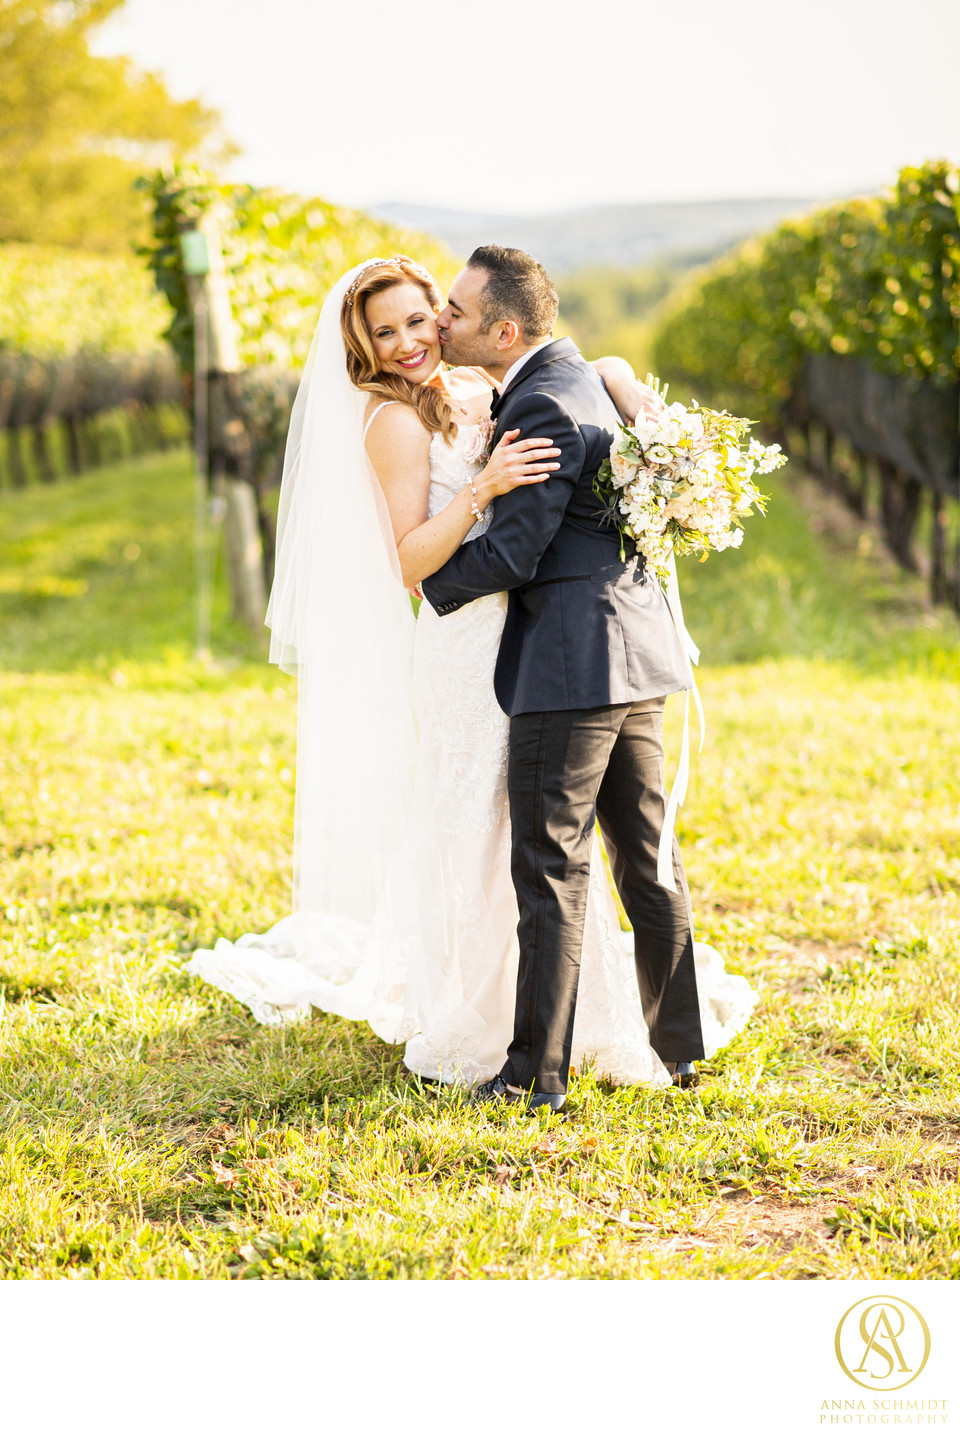 Stone Tower Winery Wedding Photographer